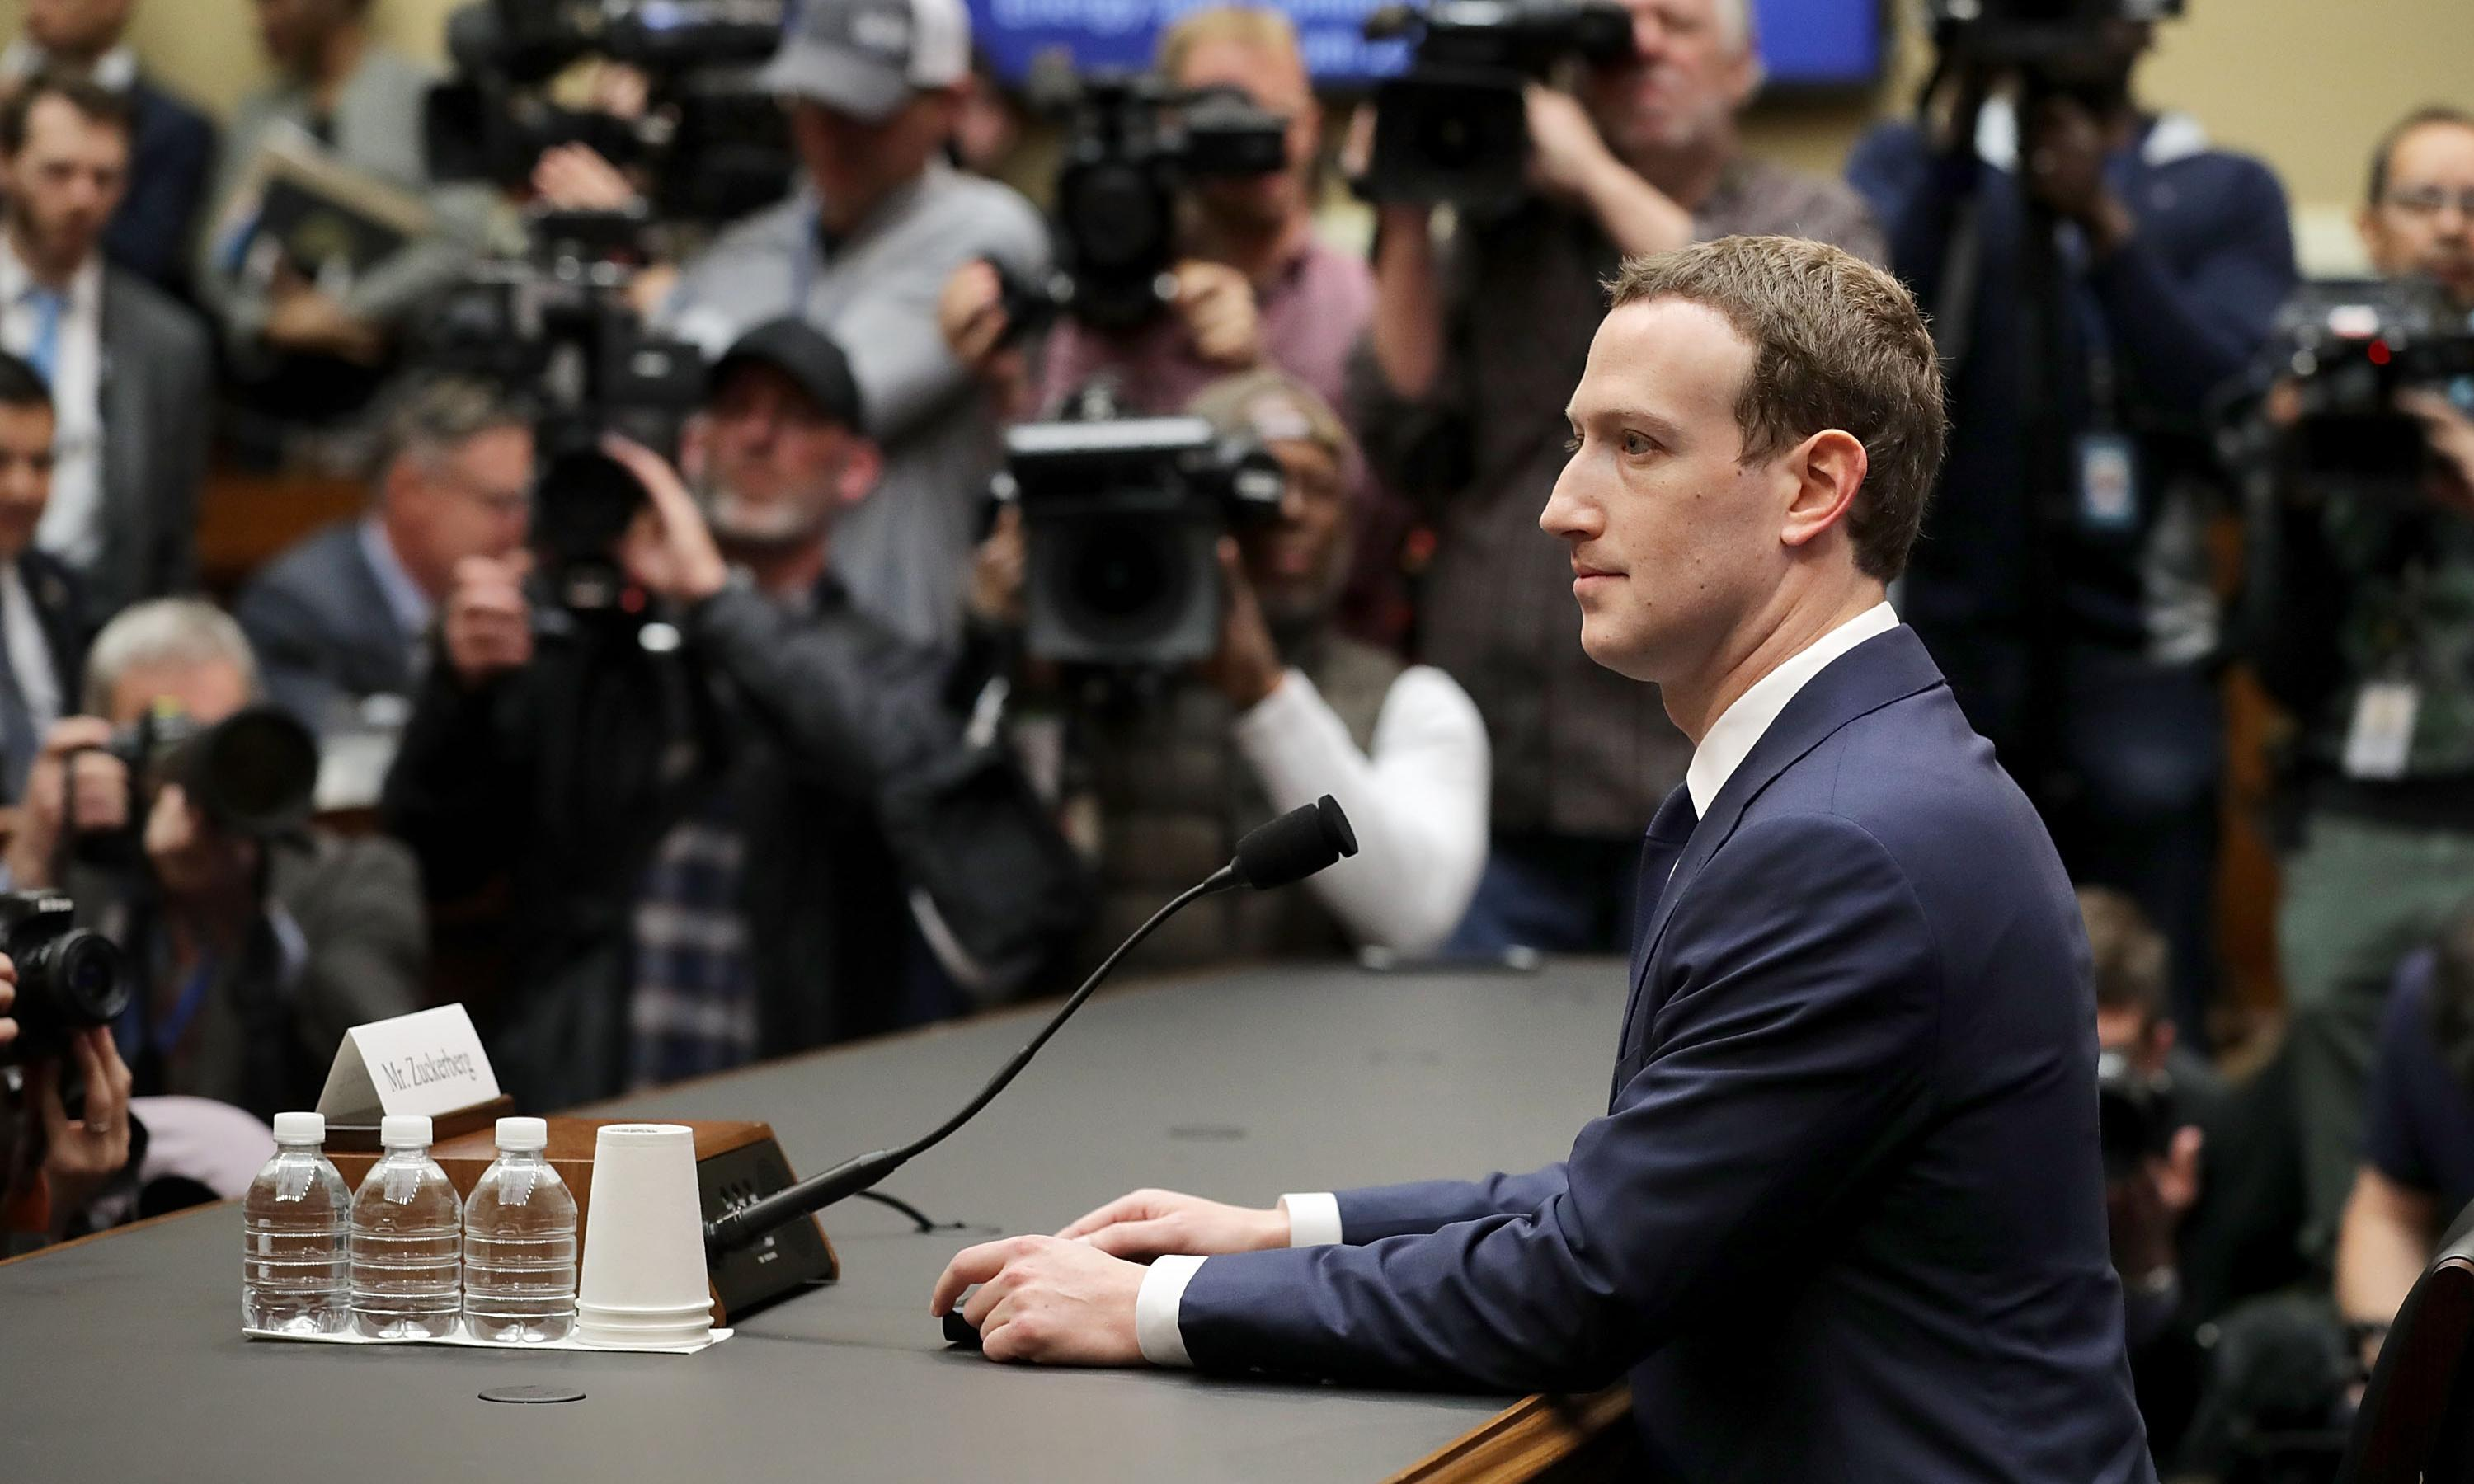 Break up Facebook (and while we're at it, Google, Apple and Amazon)